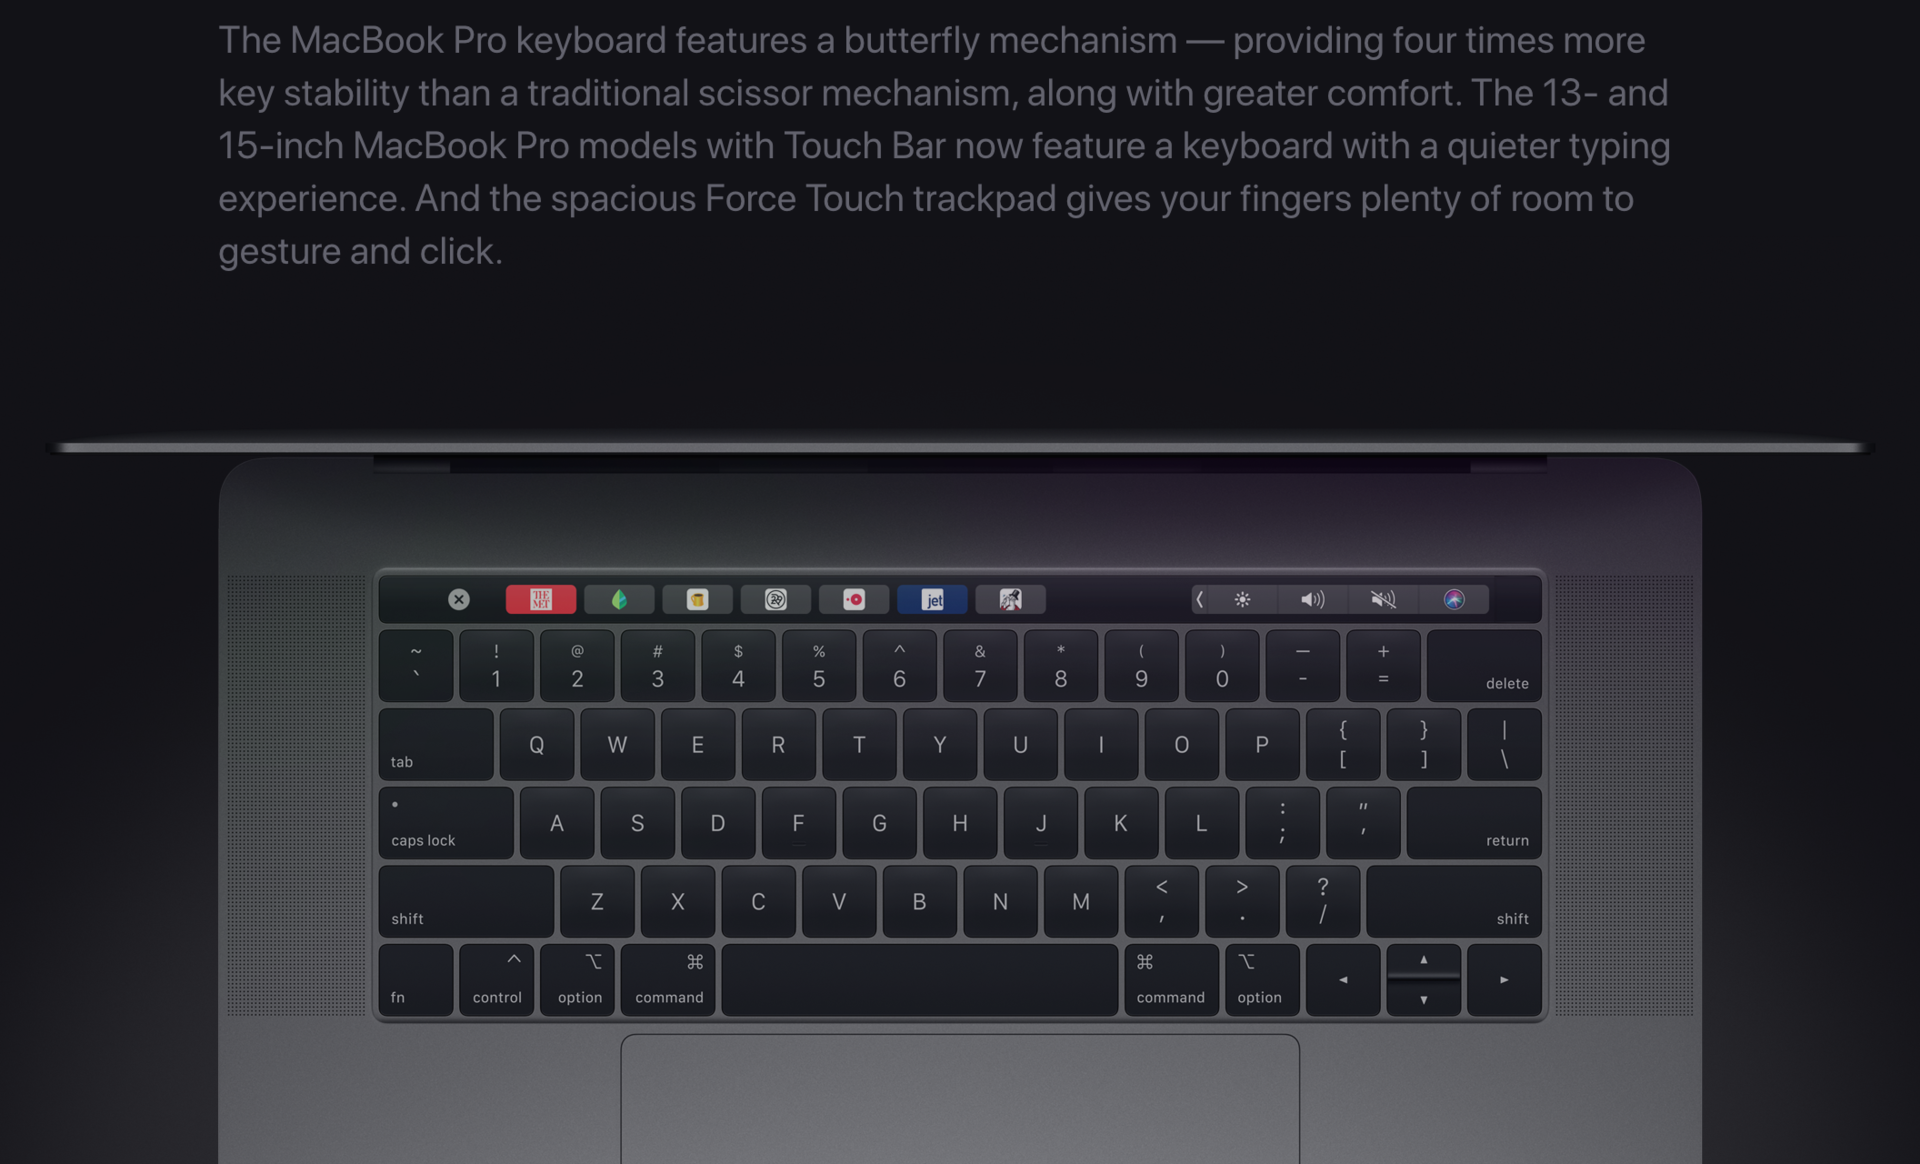 A workplace study shows MacBook keyboard failure rate of 30